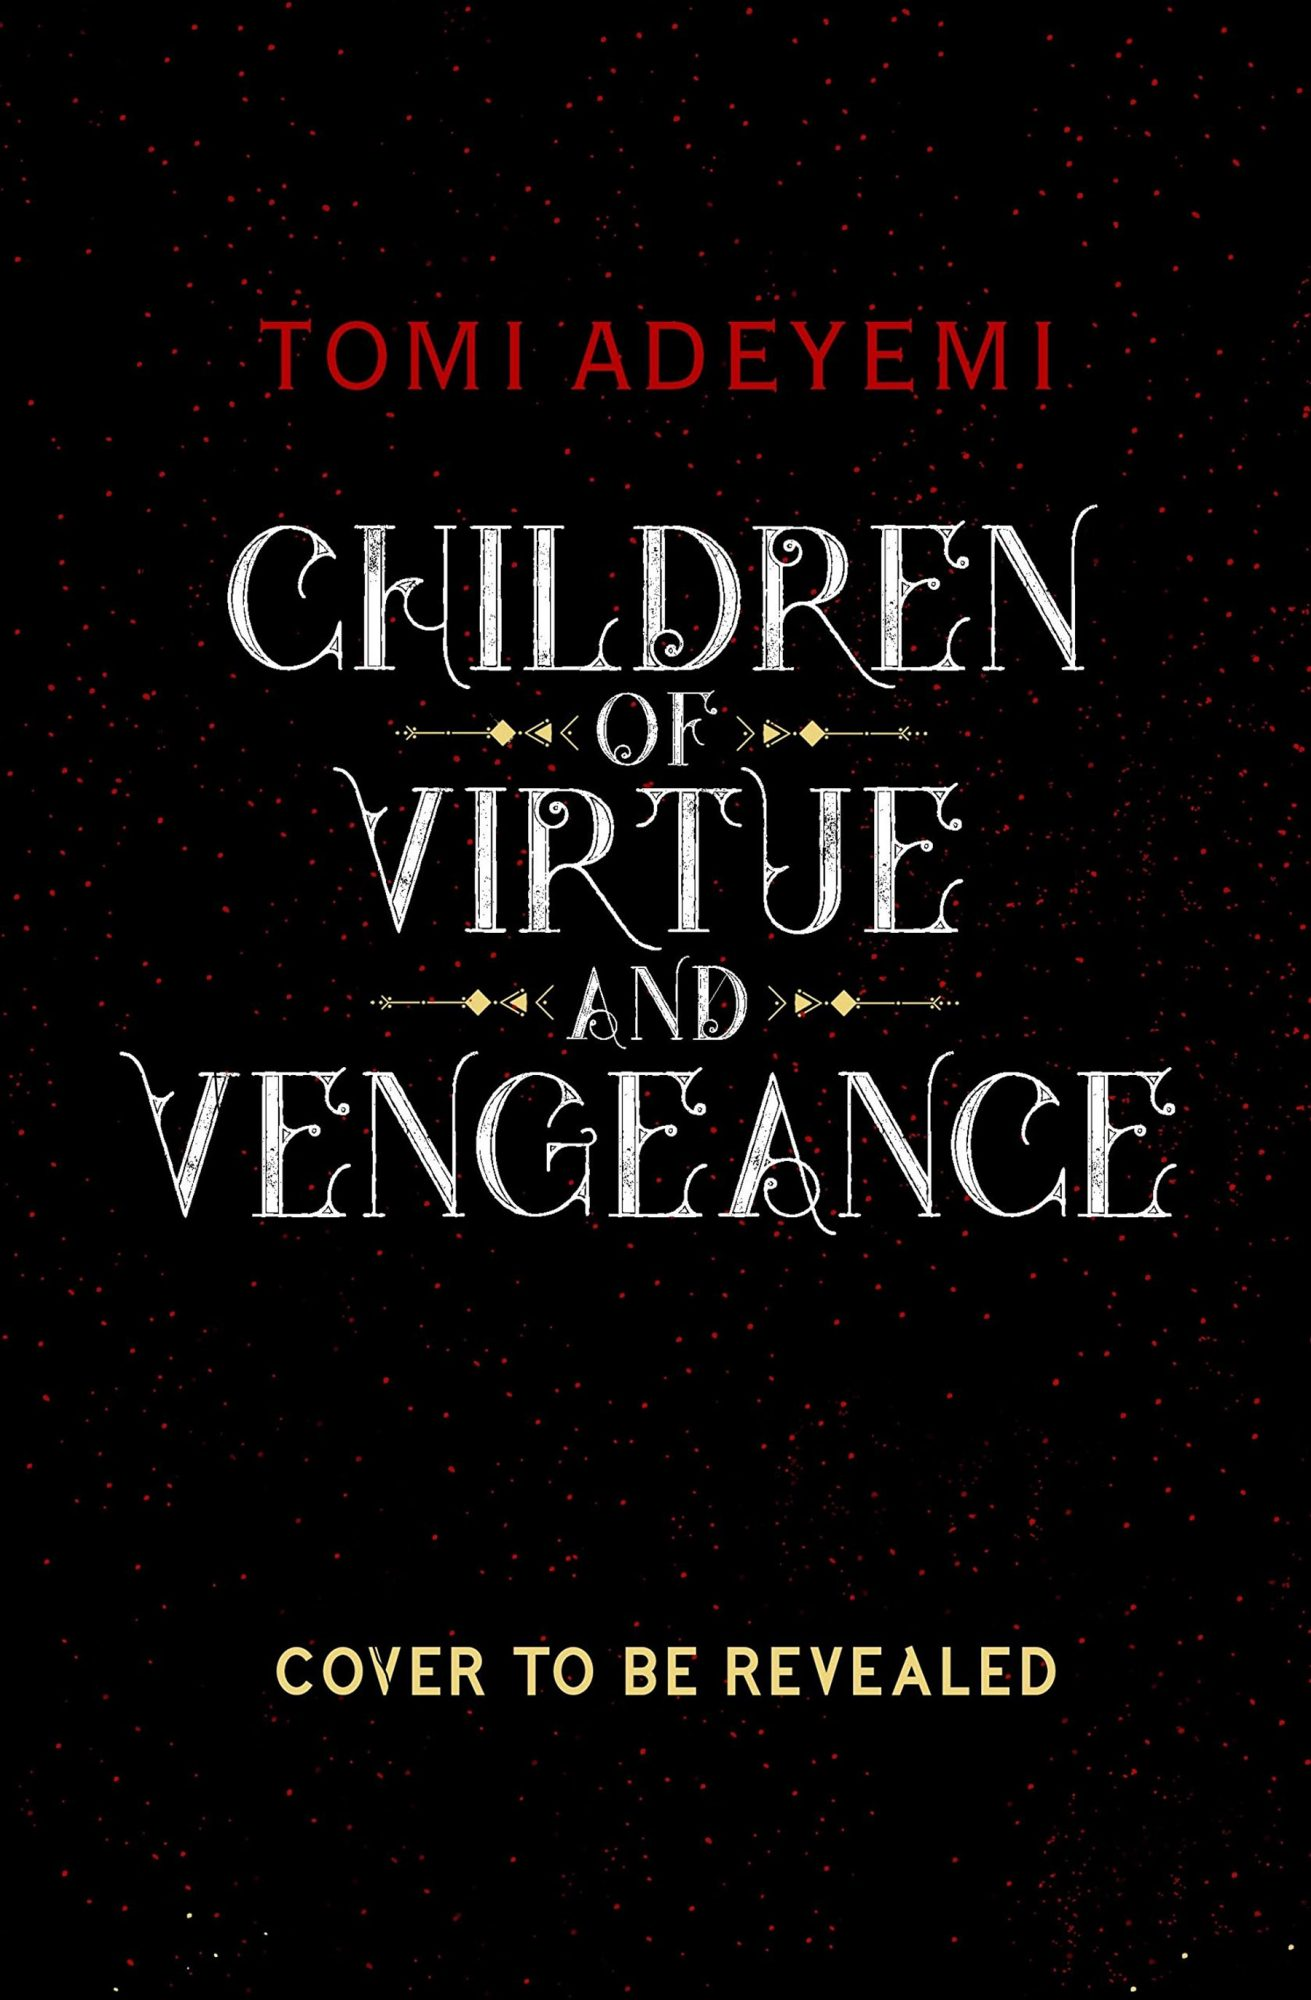 Tomi Adeyemi, Children of Virtue and VengeanceCredit: Henry Holt and Co.